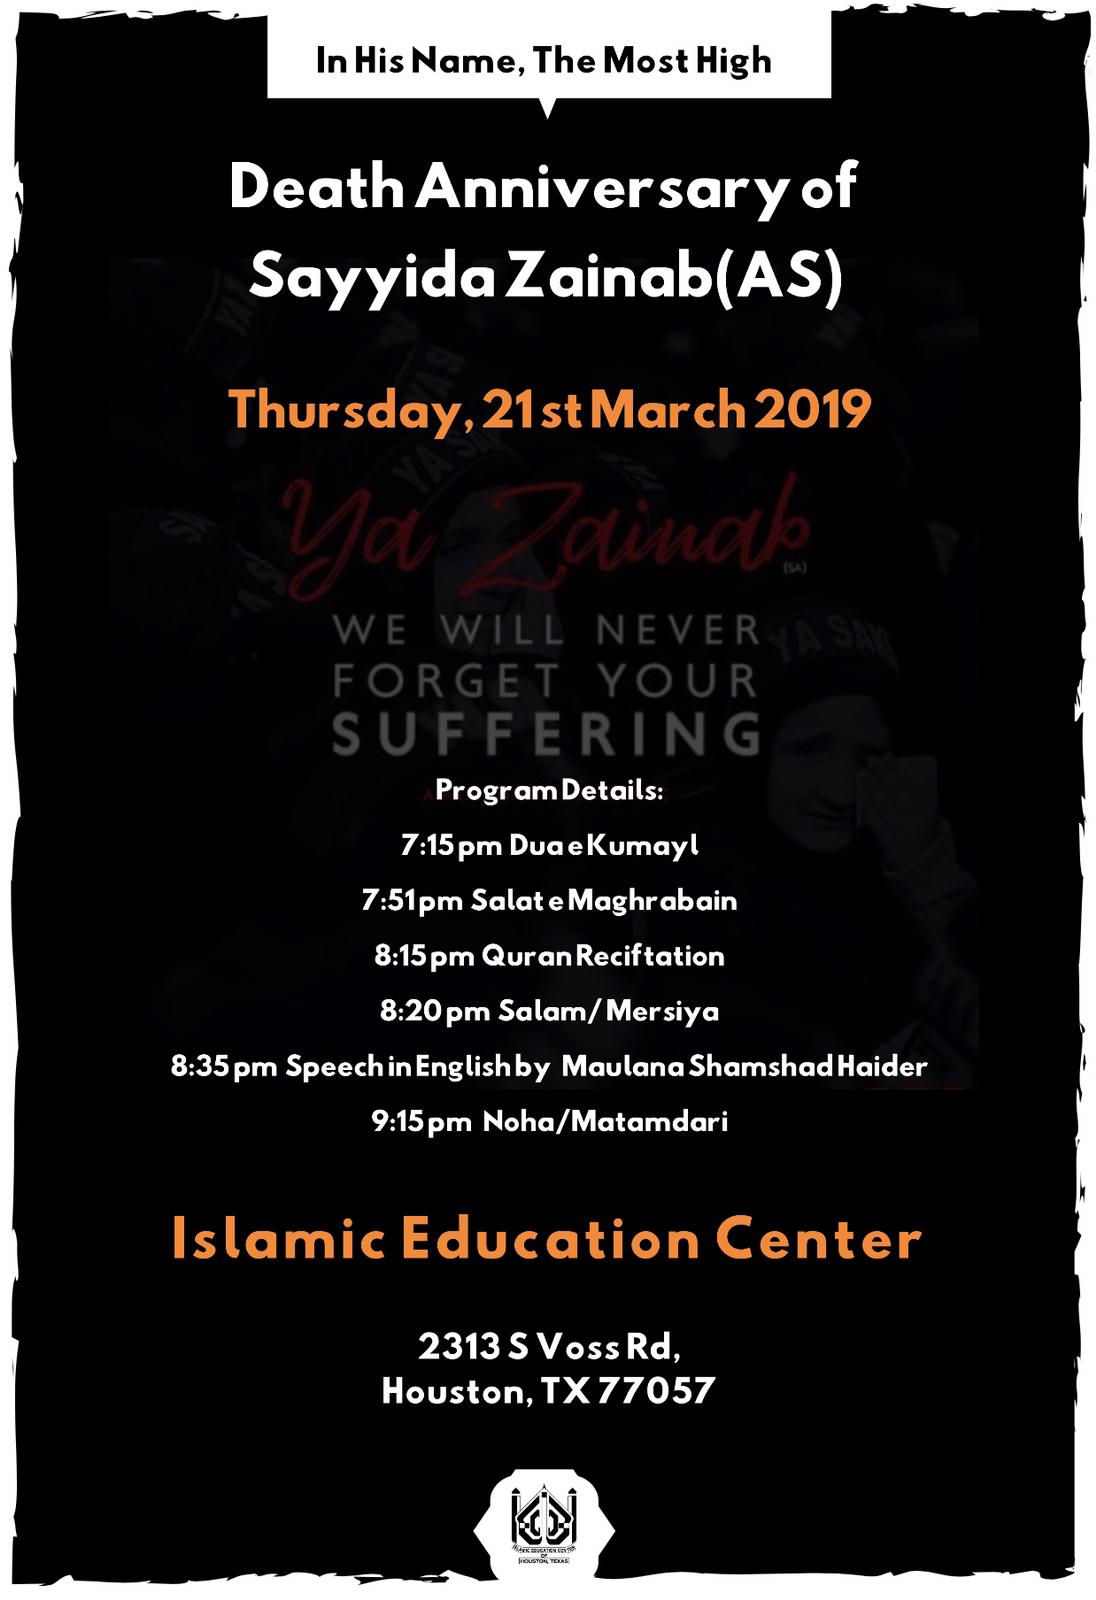 Death Anniversary of Sayyida Zainab (AS) – Islamic Education Center